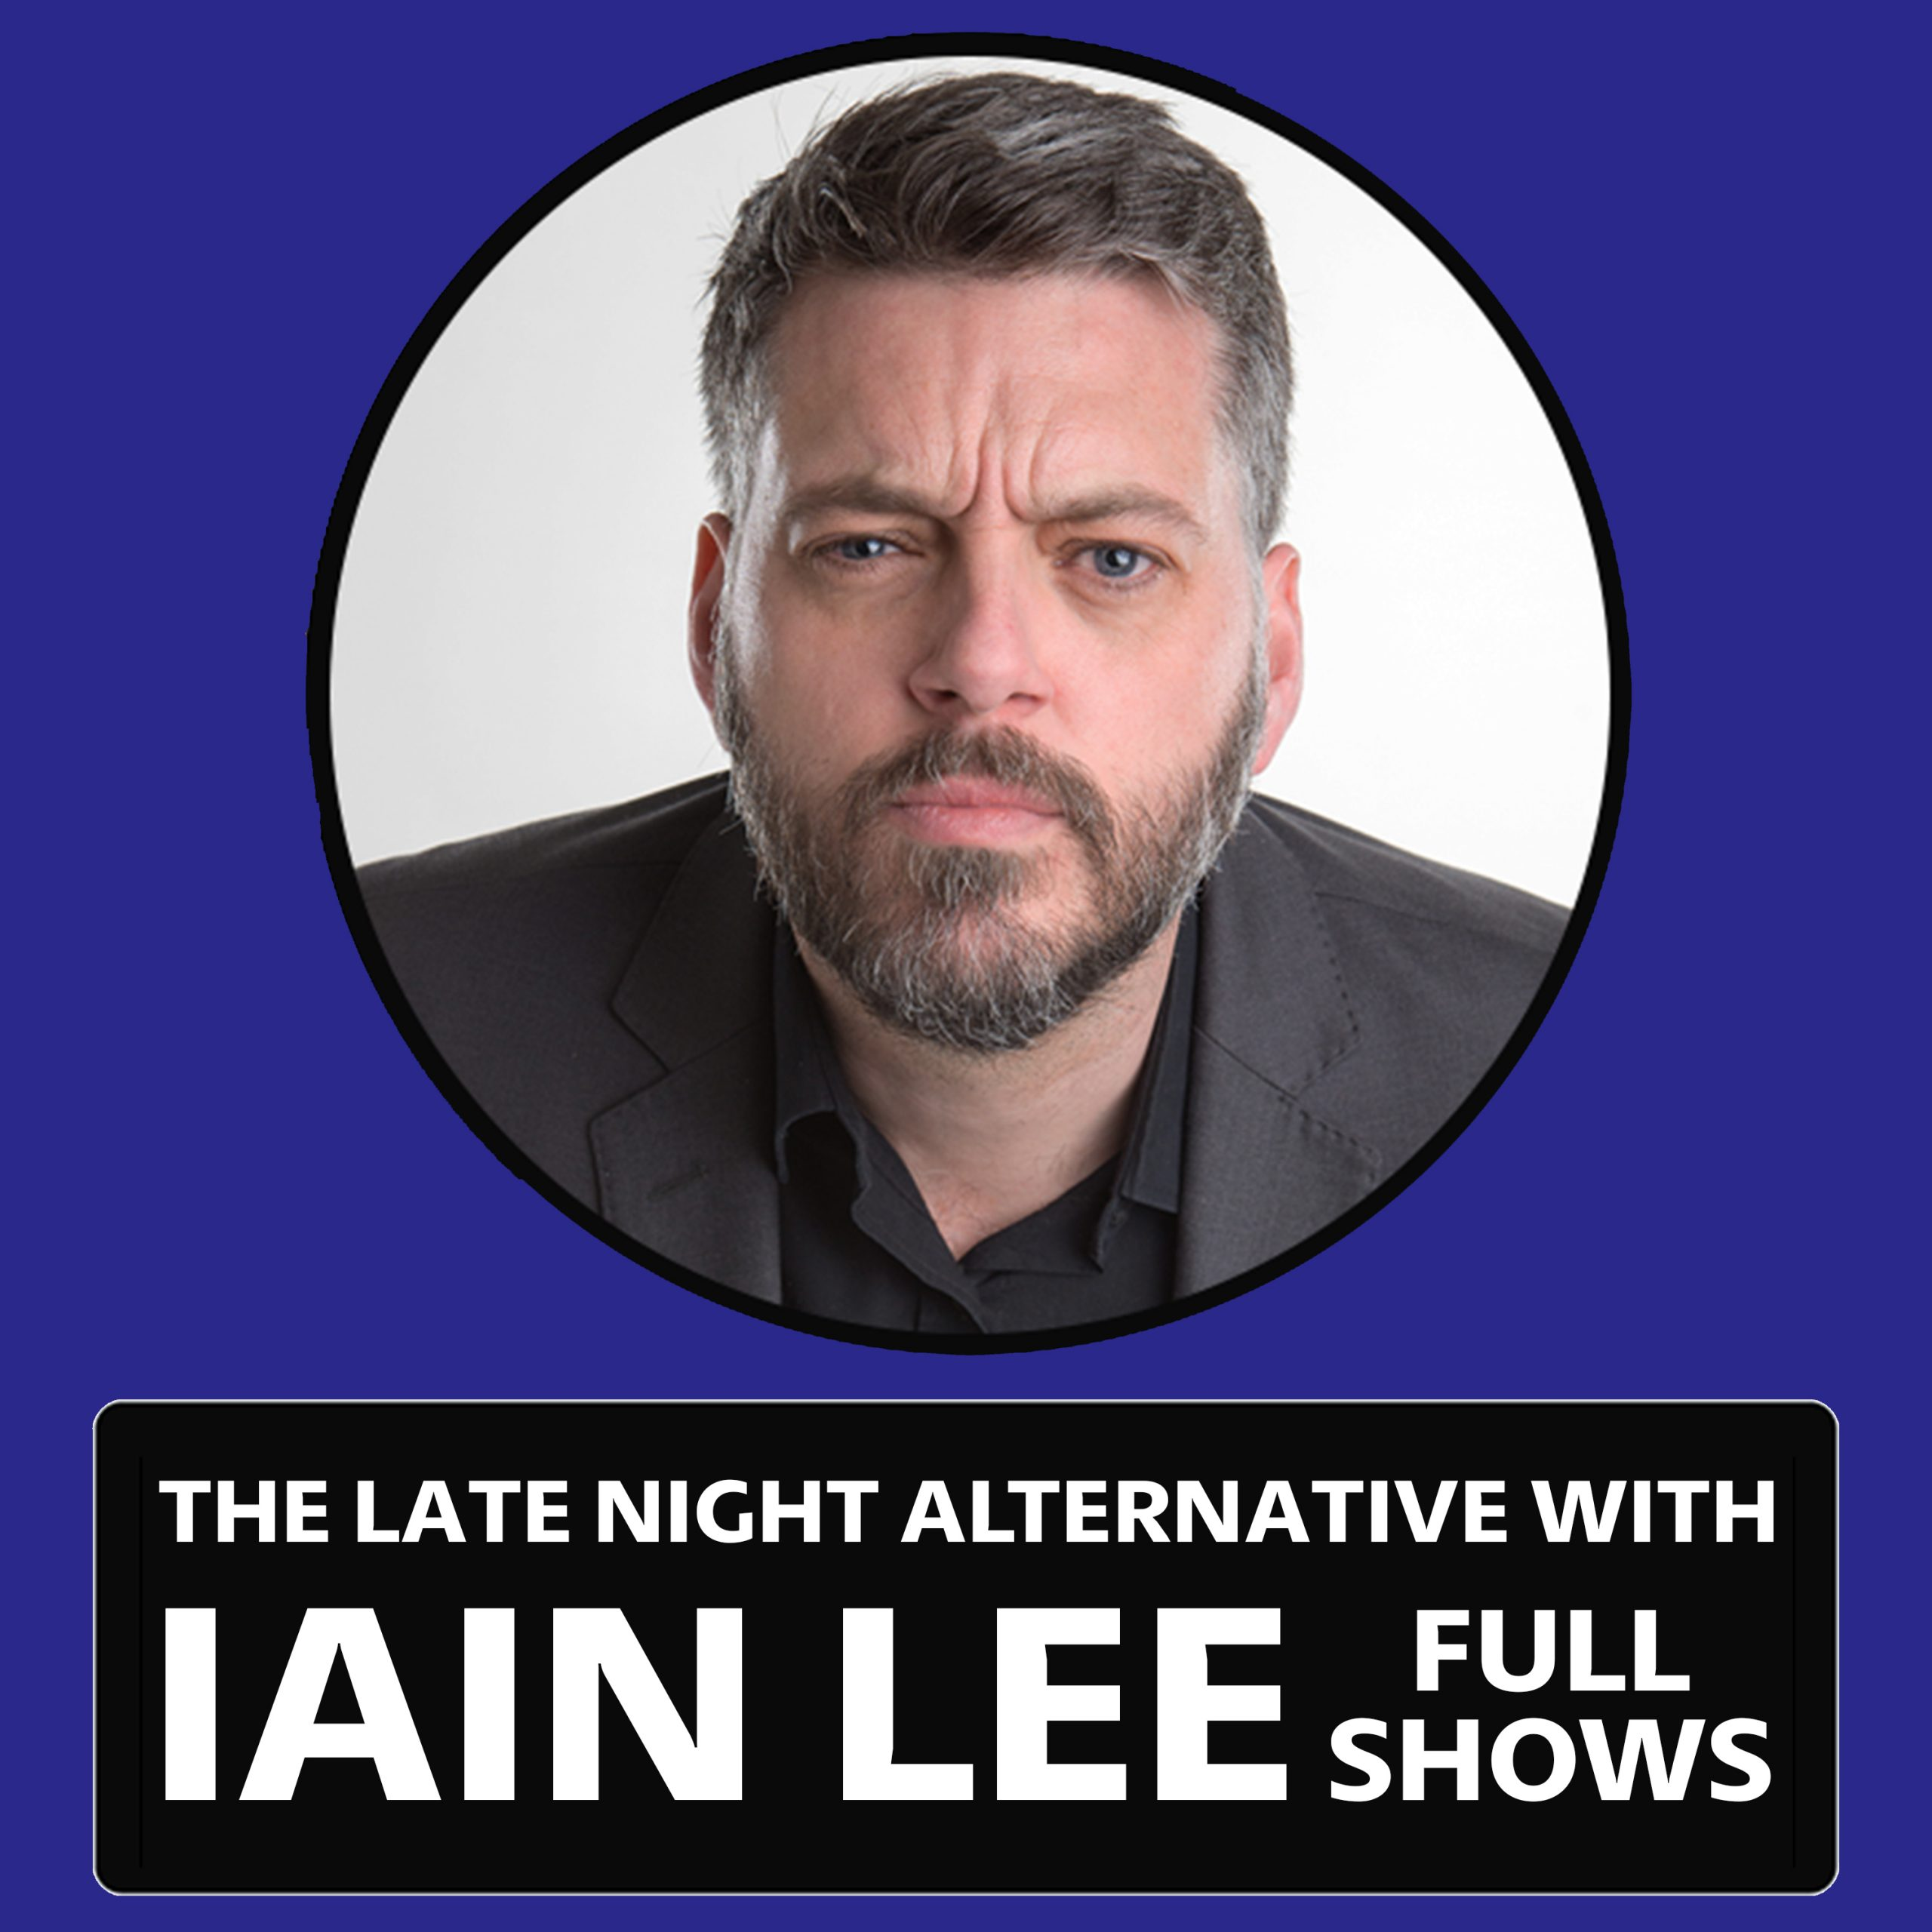 The Late Night Alternative with Iain Lee Full Shows